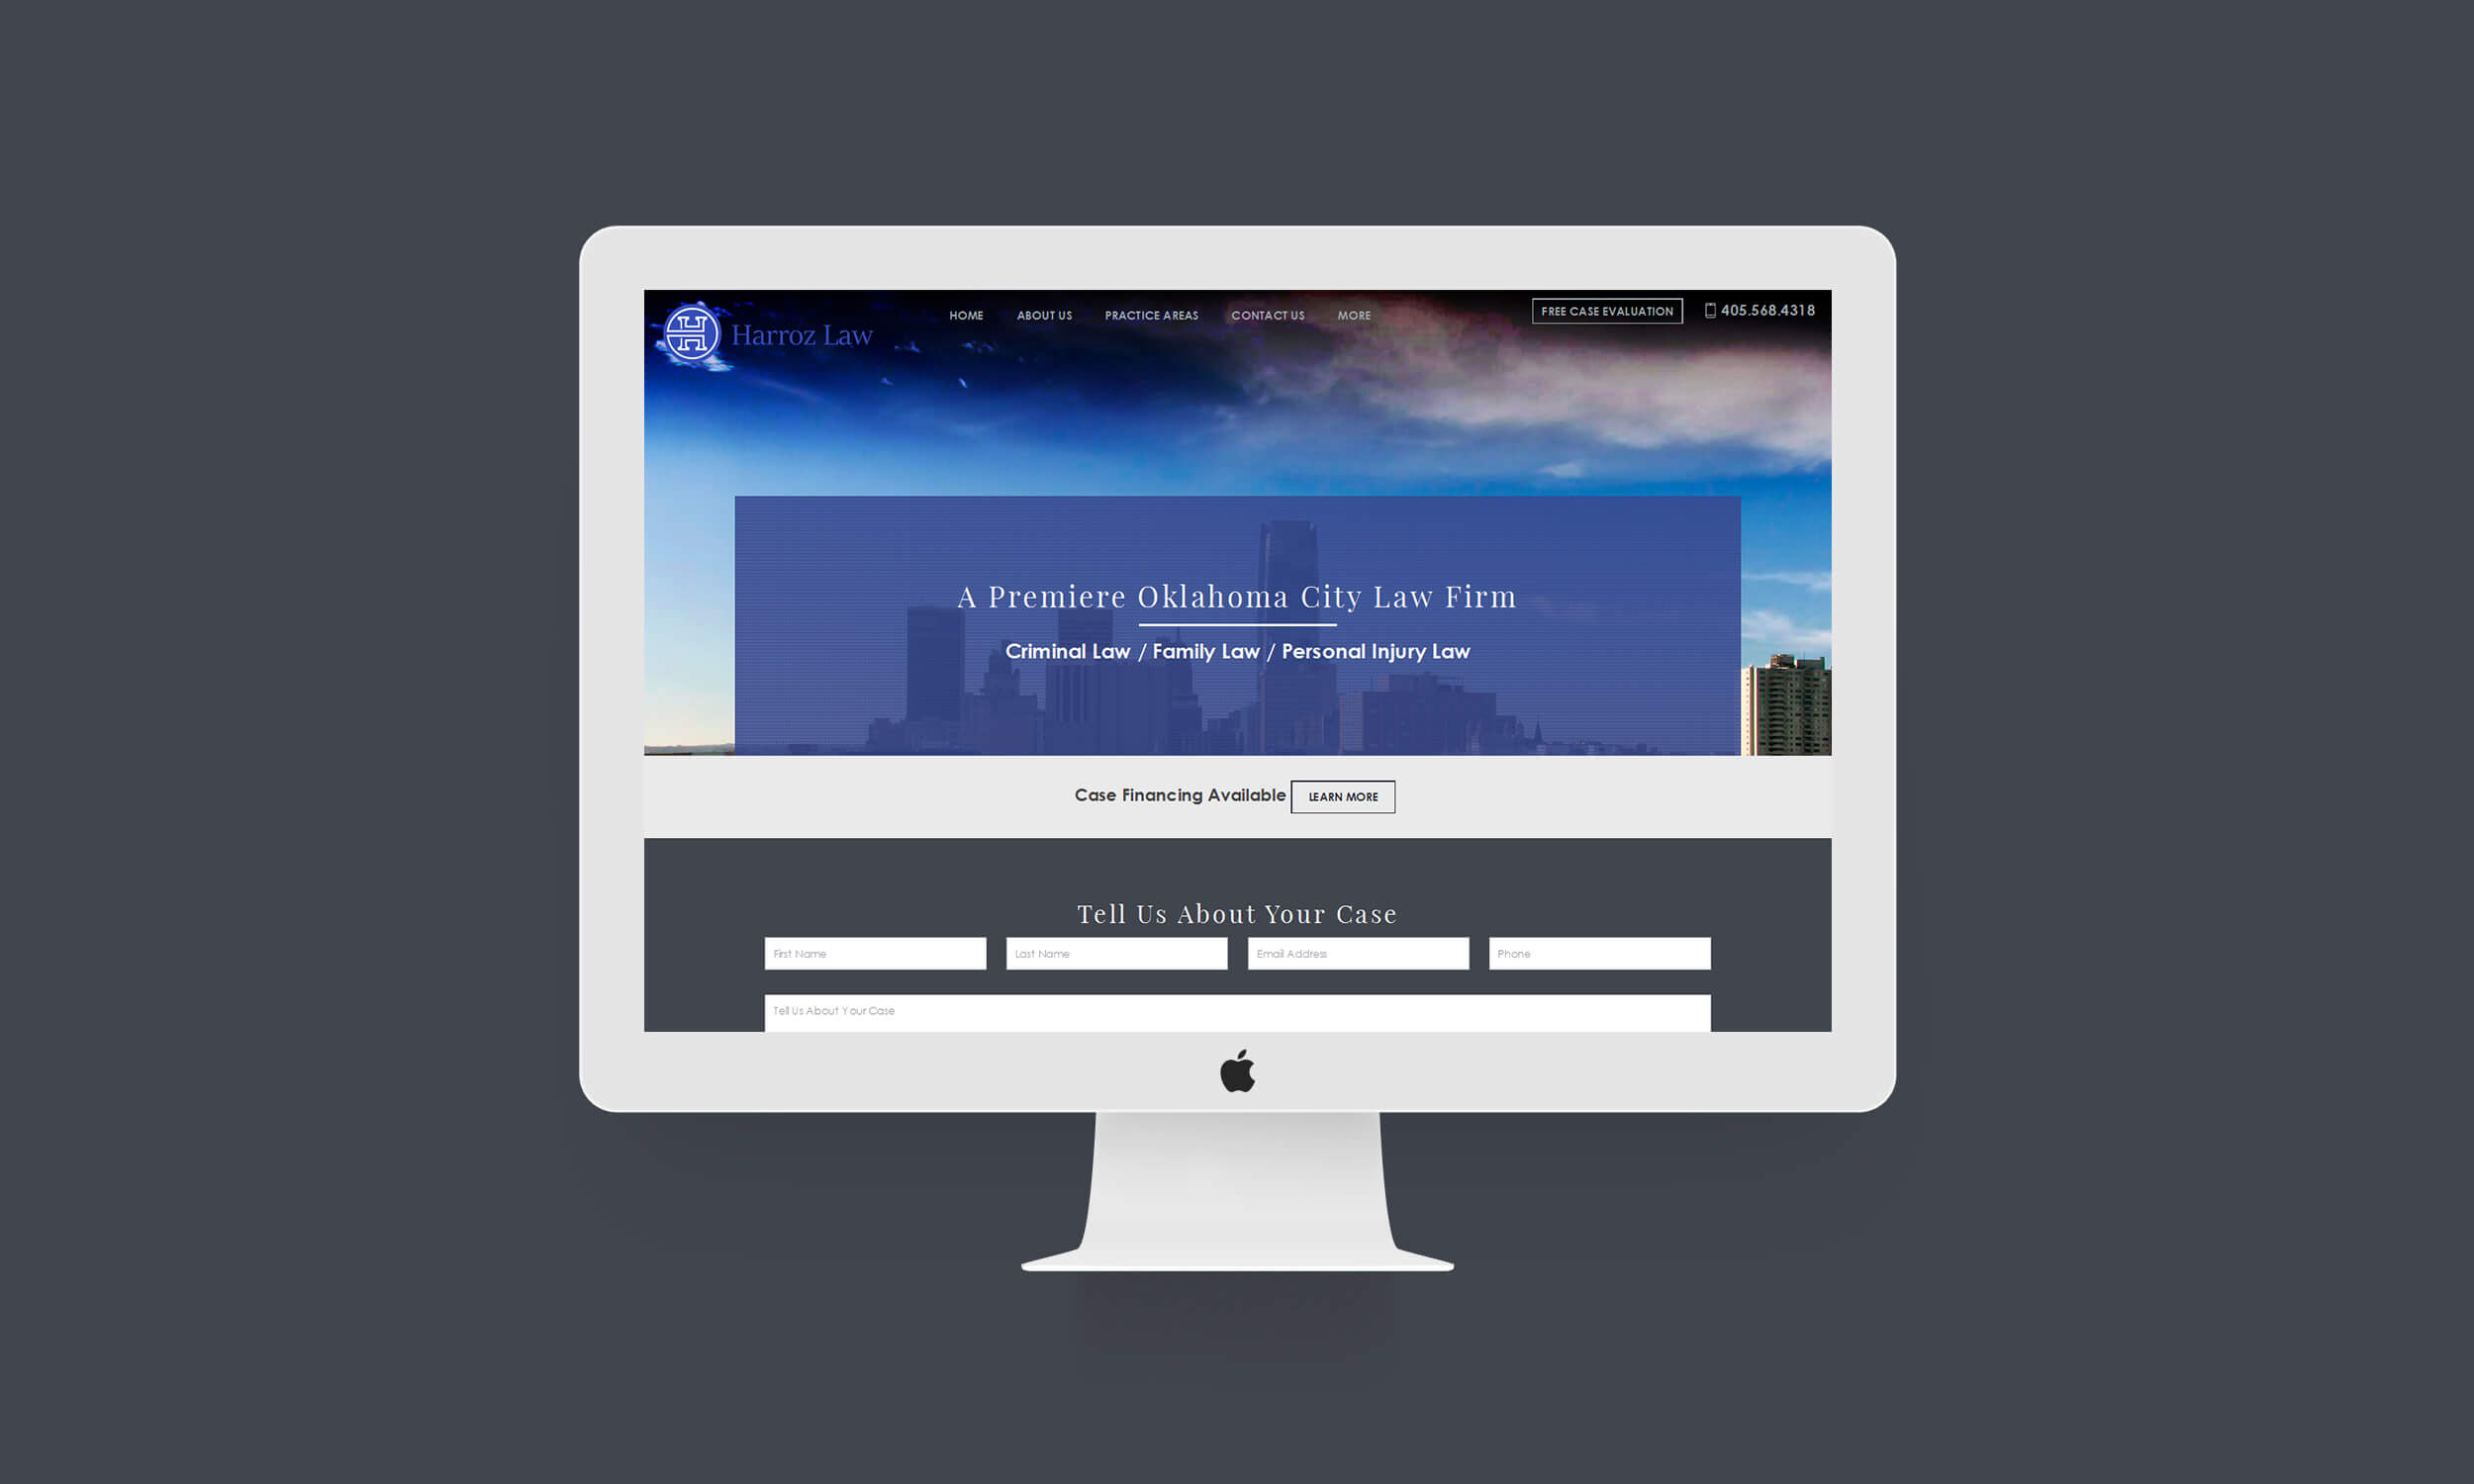 harroz law homepage imac mockup